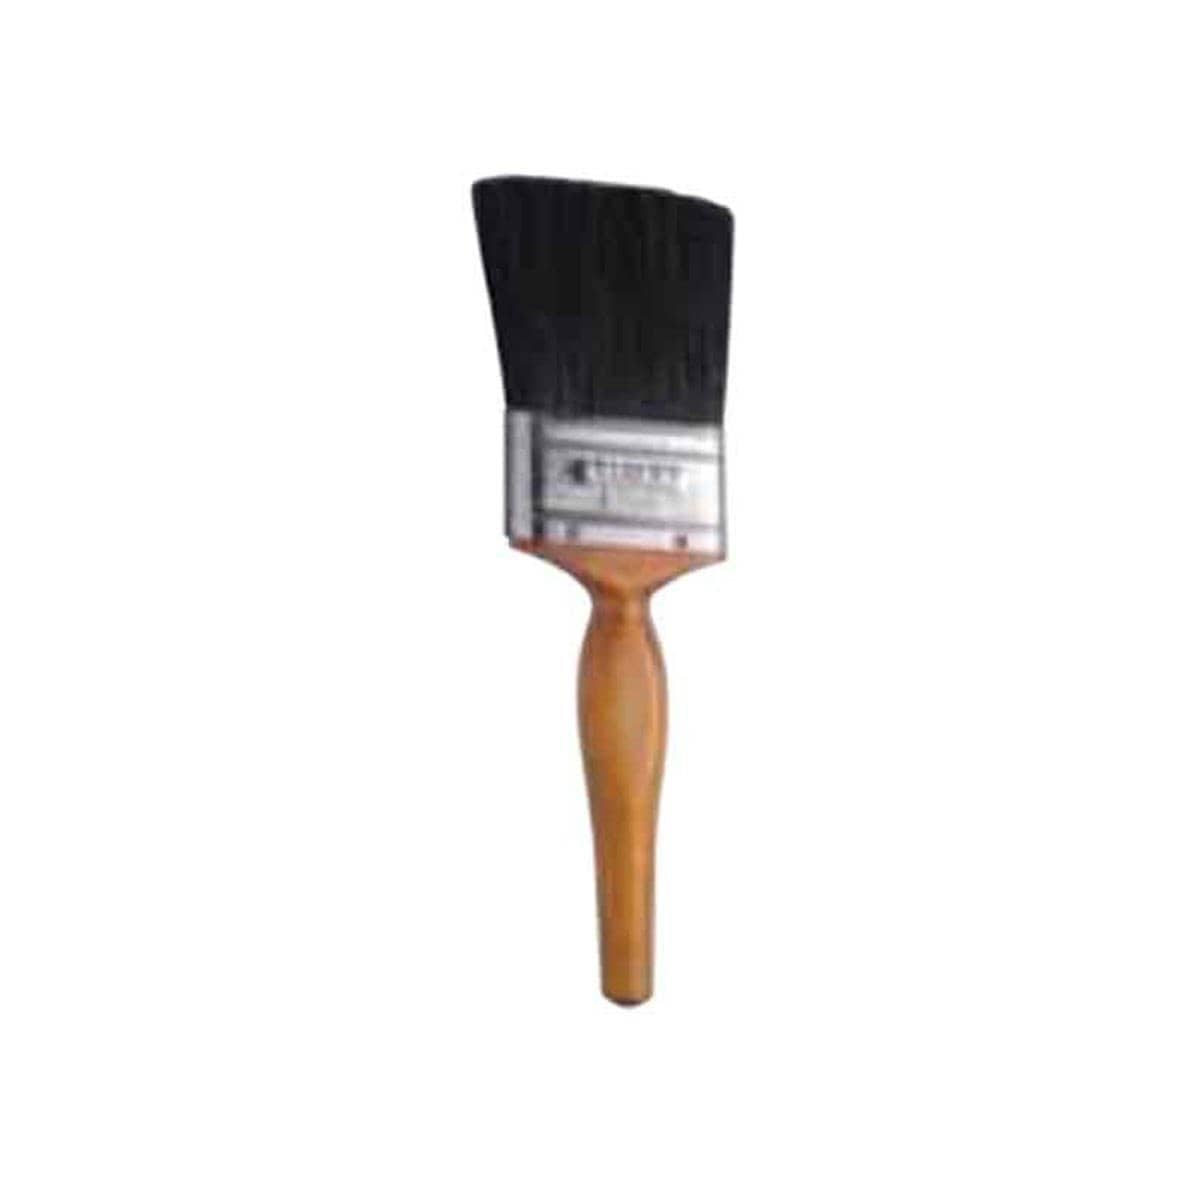 STANLEY AllMaster Paint Brush 2-1/2in 63mm (29-034-1)